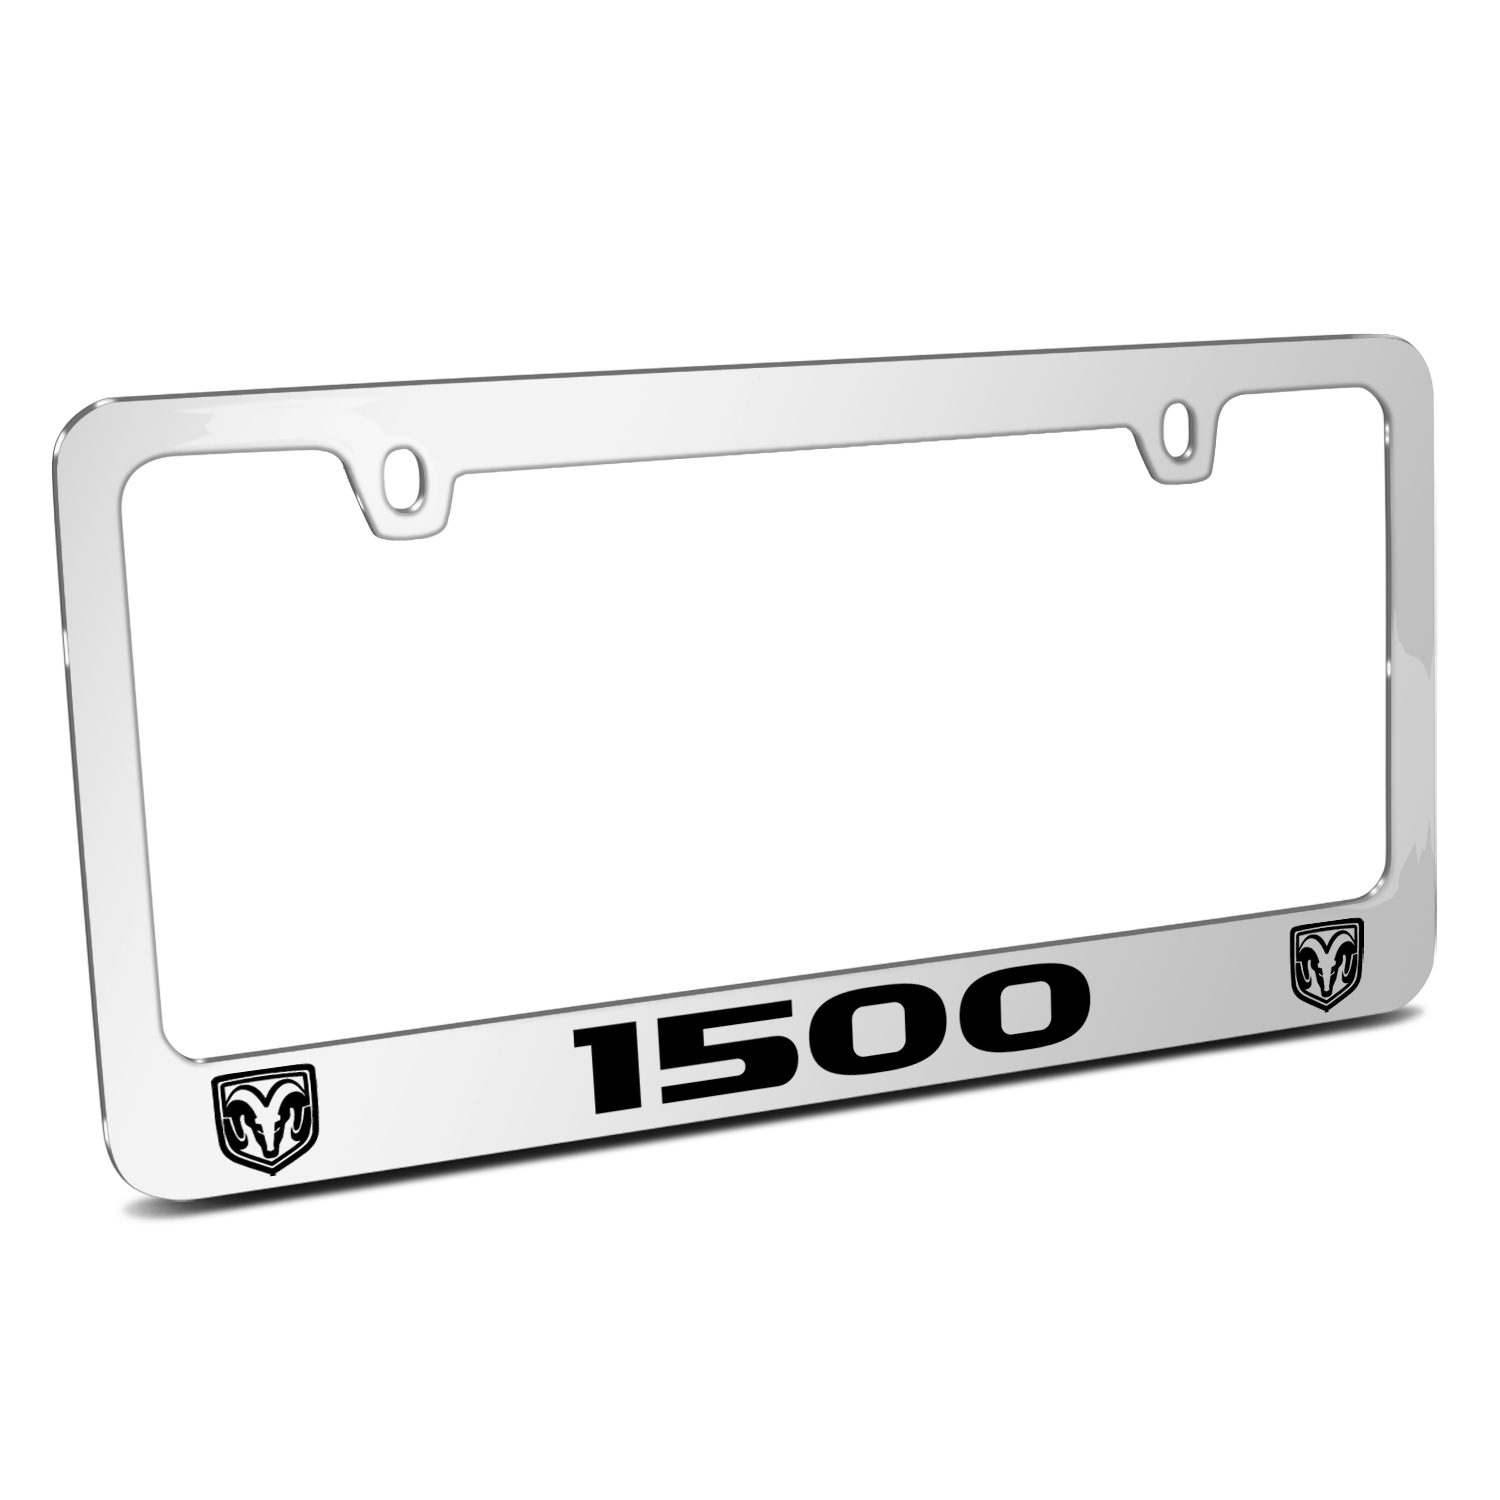 RAM 1500 Dual Logos Mirror Chrome Metal License Plate Frame